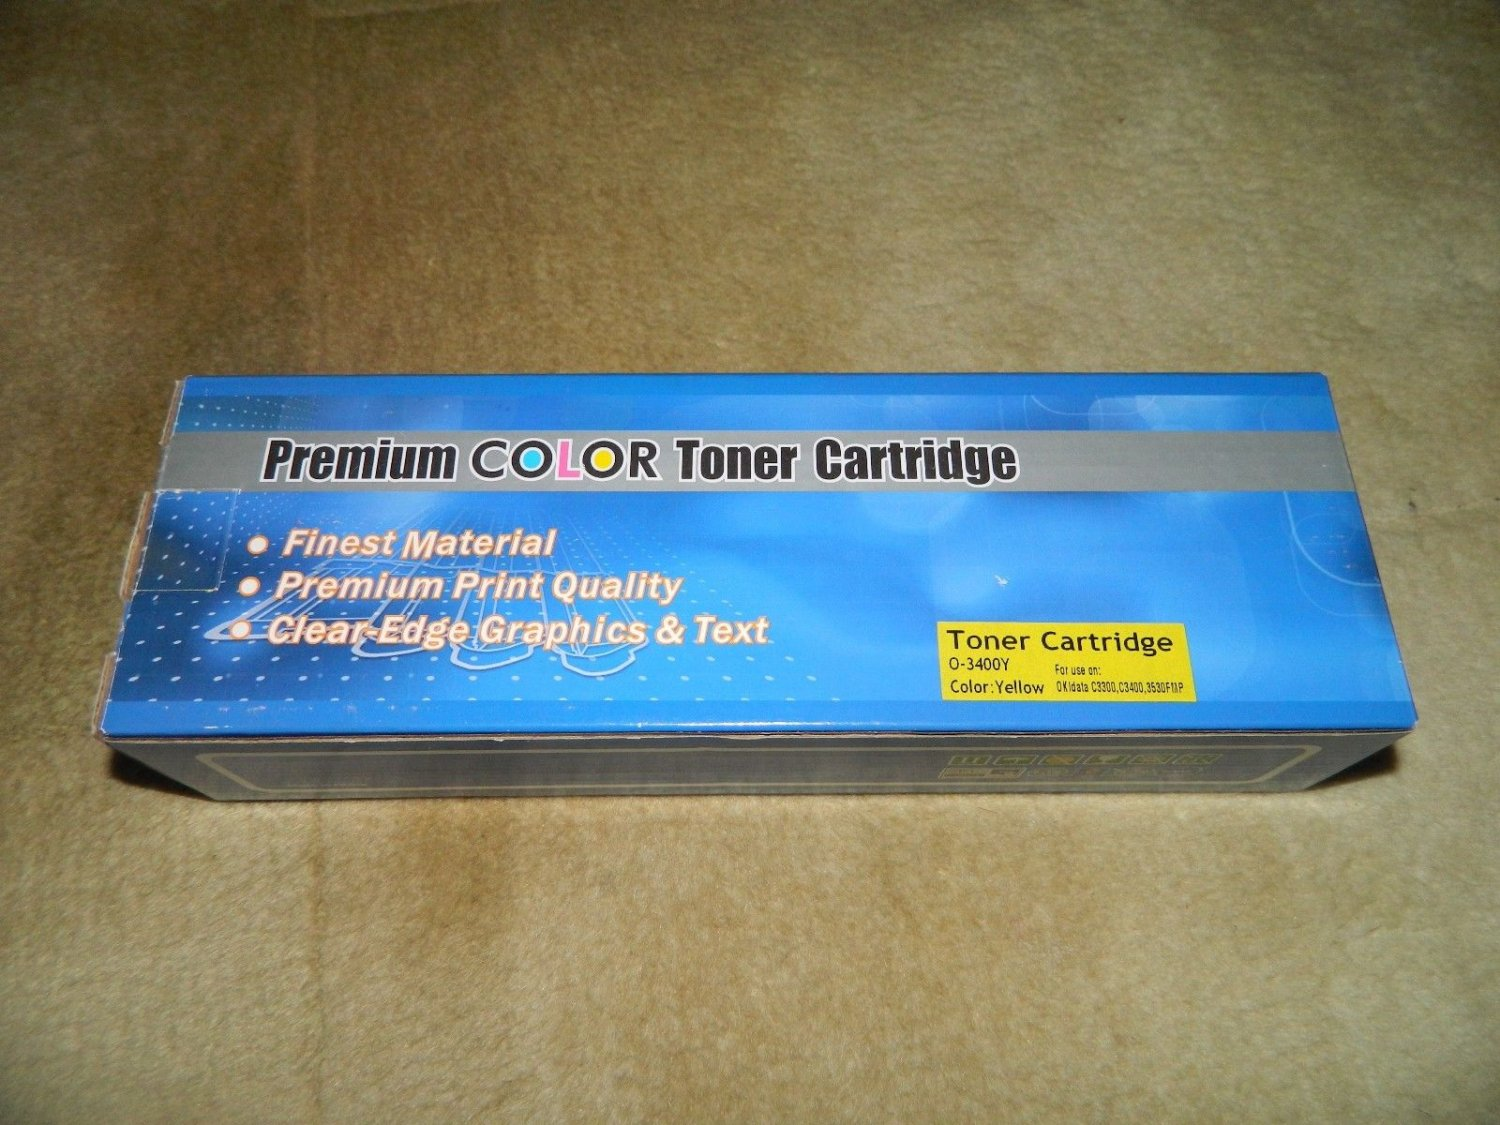 C3400 Cyan and O-3400Y Yellow Toner Cartridges for Okidata C3300, C3400, C3530FM